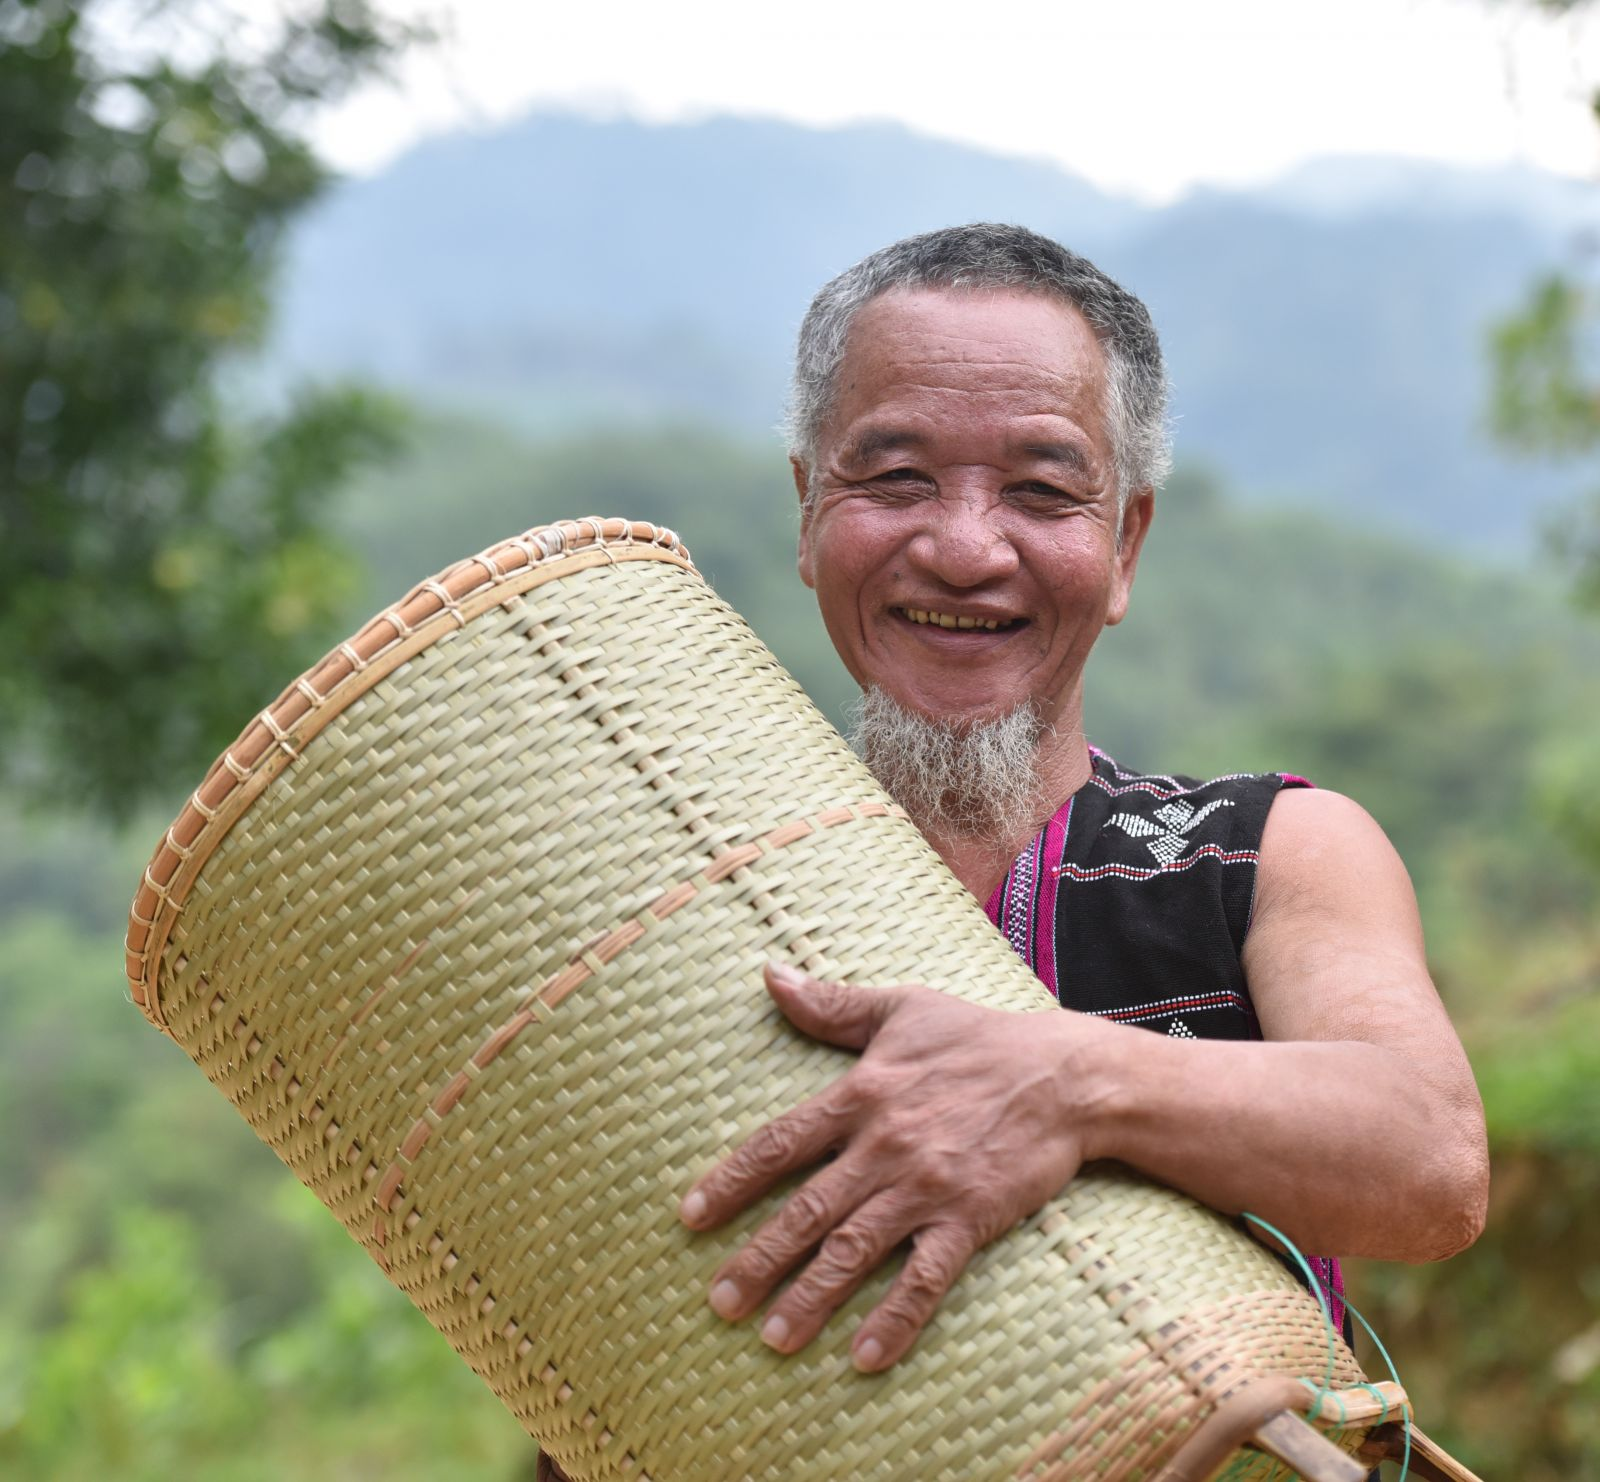 Joy with the handmade products